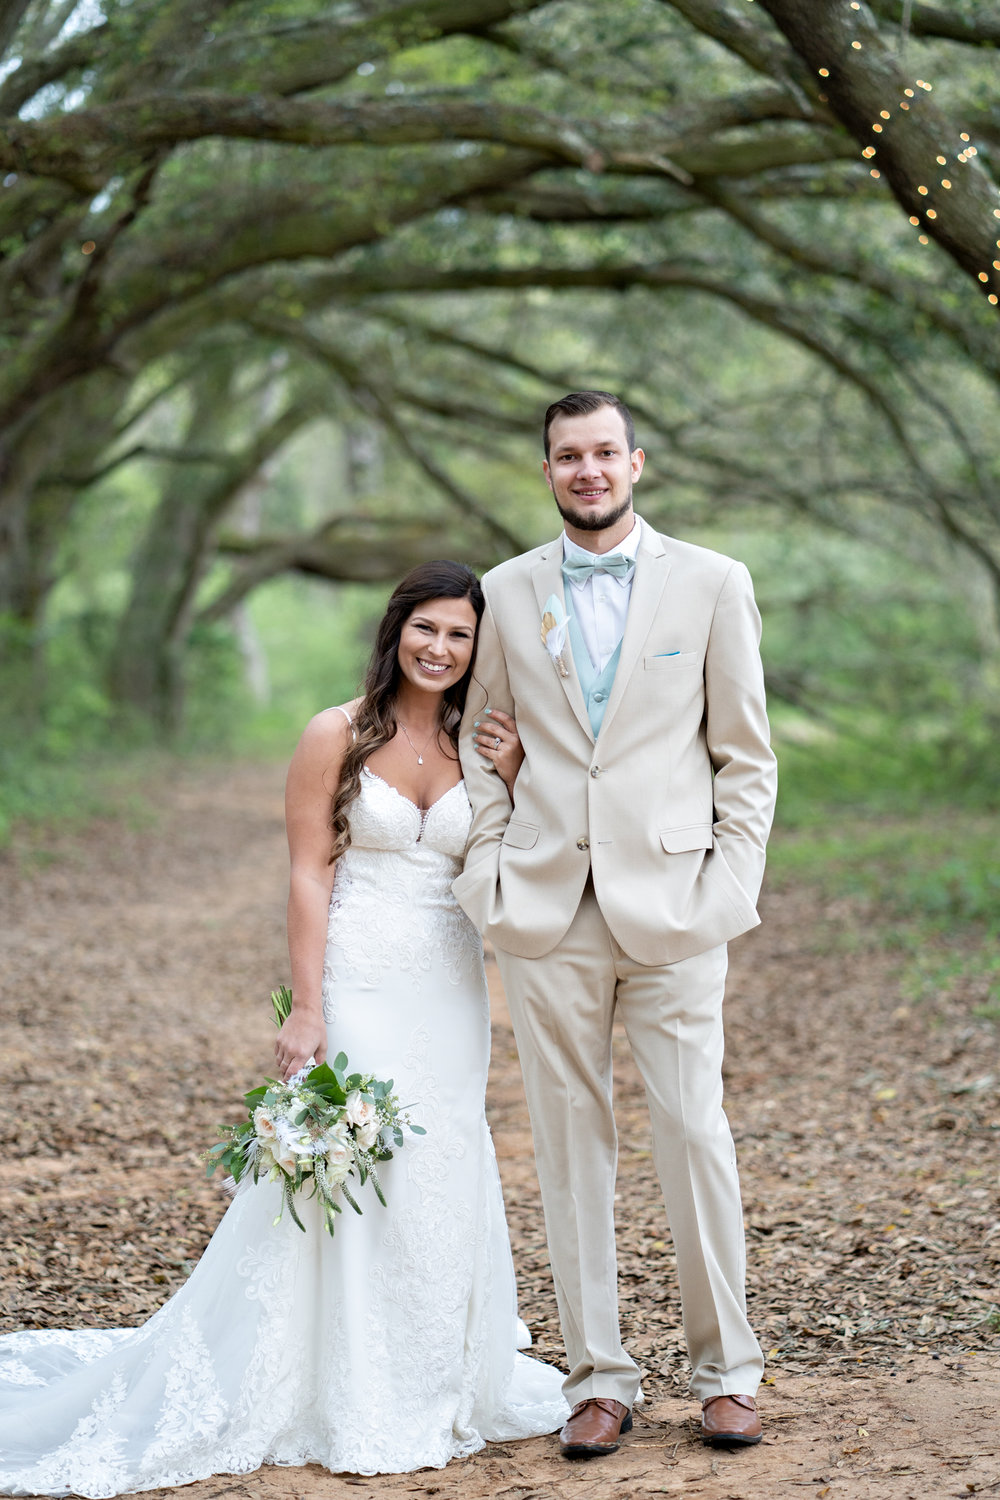 Fairhope-Alabama-Wedding-Photographers-Nick-Drollette-Photography-141.jpg